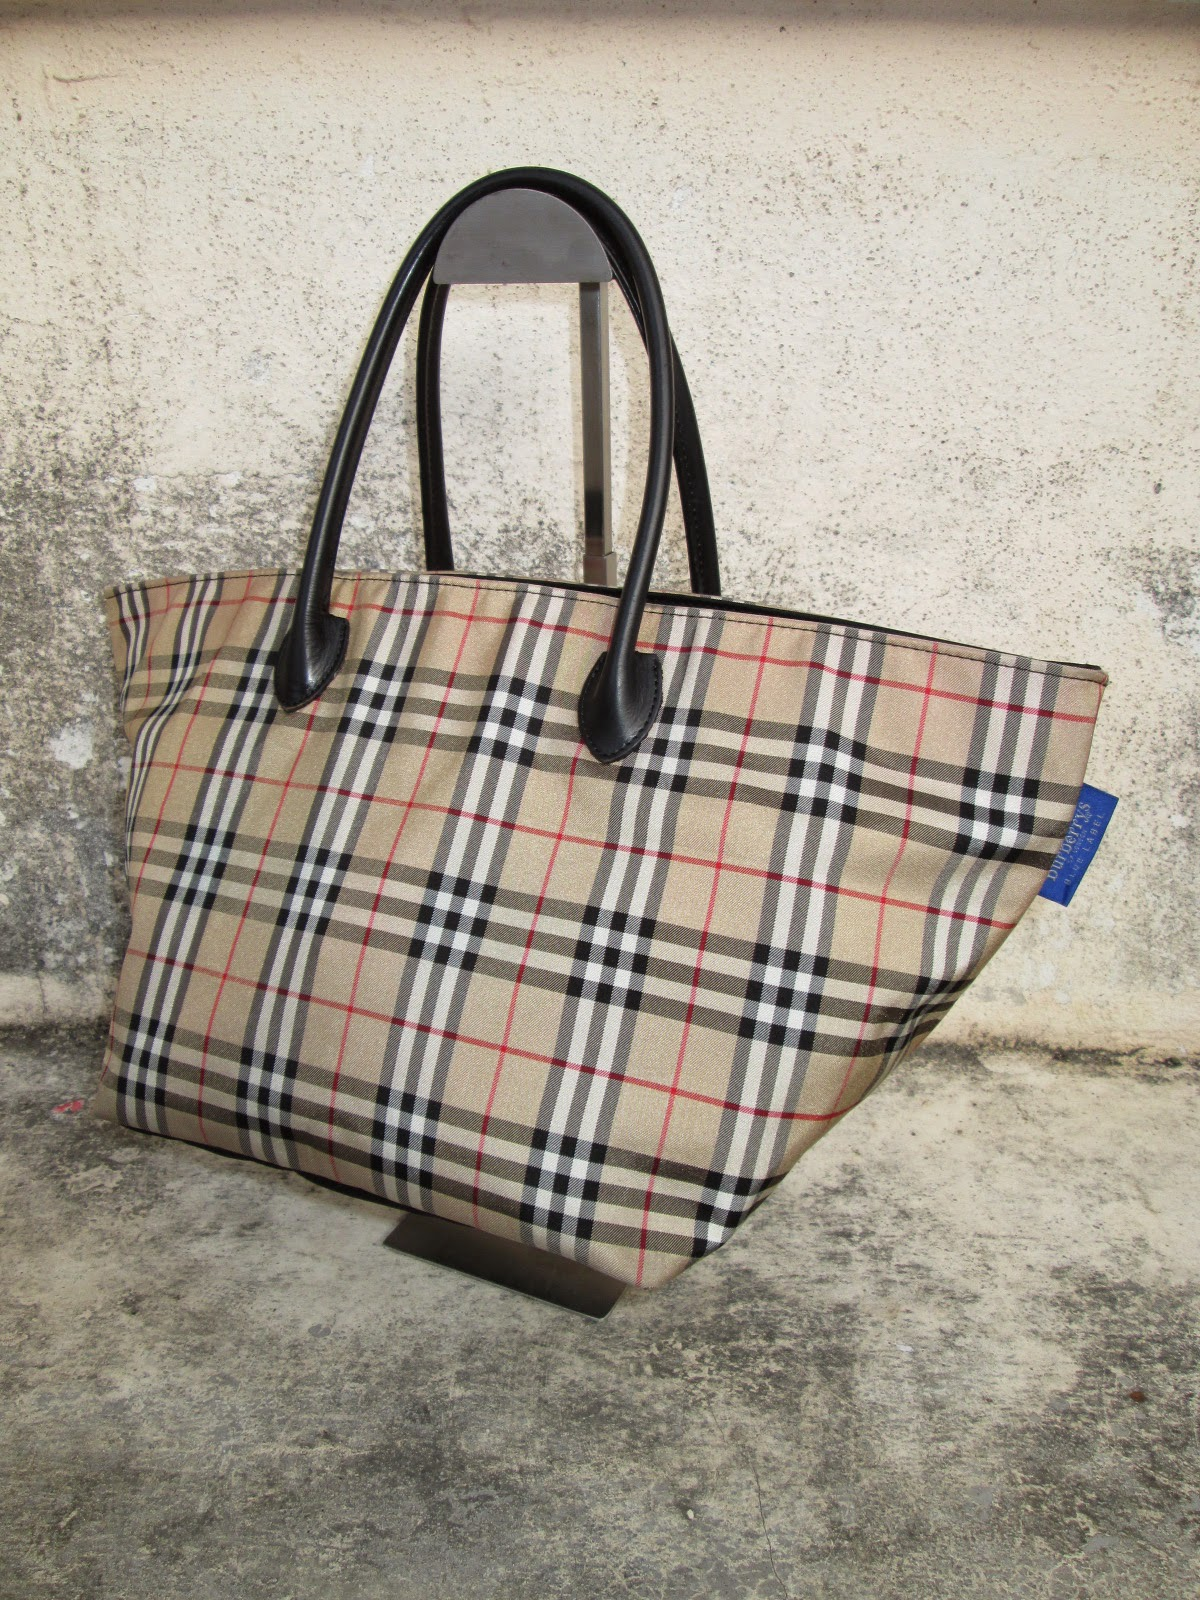 D0rayakeebag Authentic Burberry Blue Label Handbag Sold